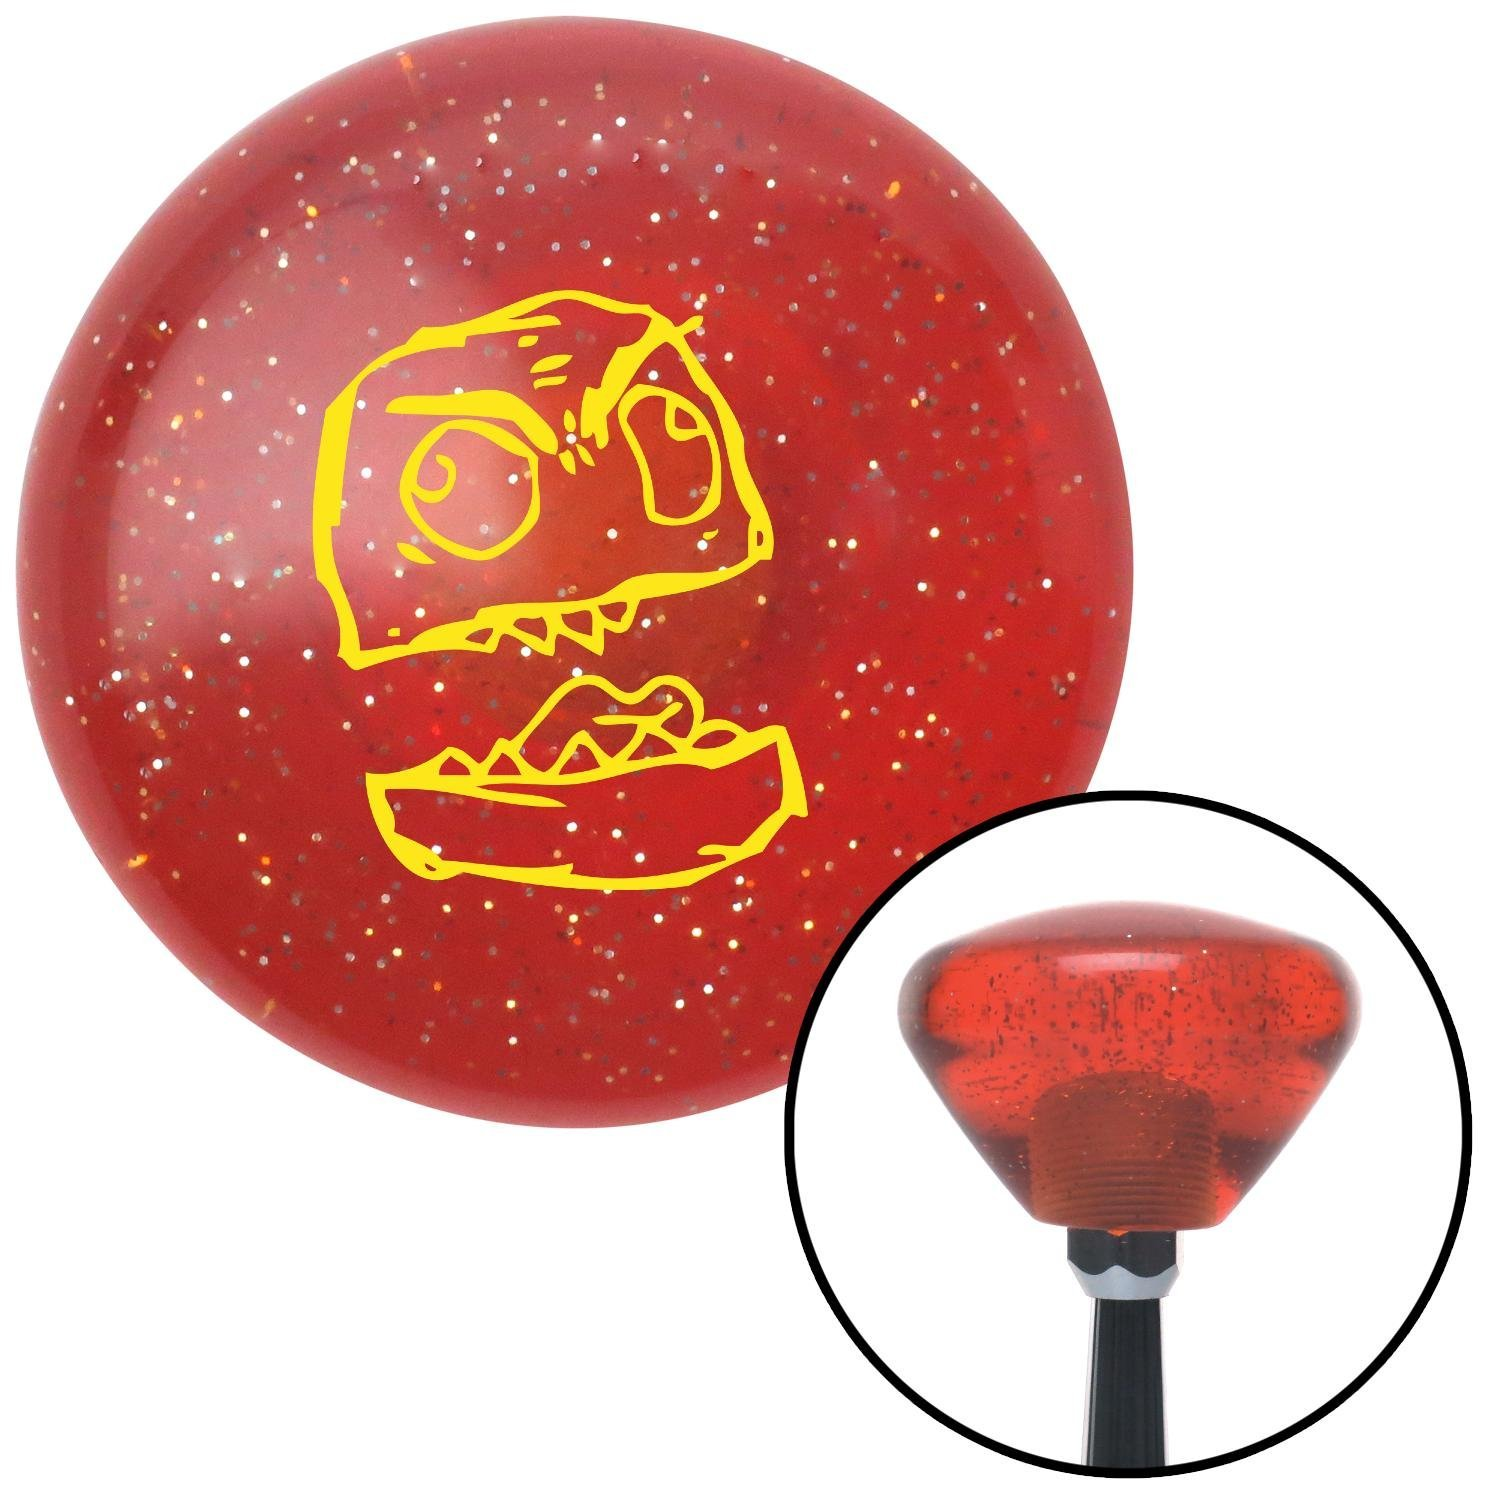 Yellow Canadian American Shifter 178045 Orange Retro Metal Flake Shift Knob with M16 x 1.5 Insert